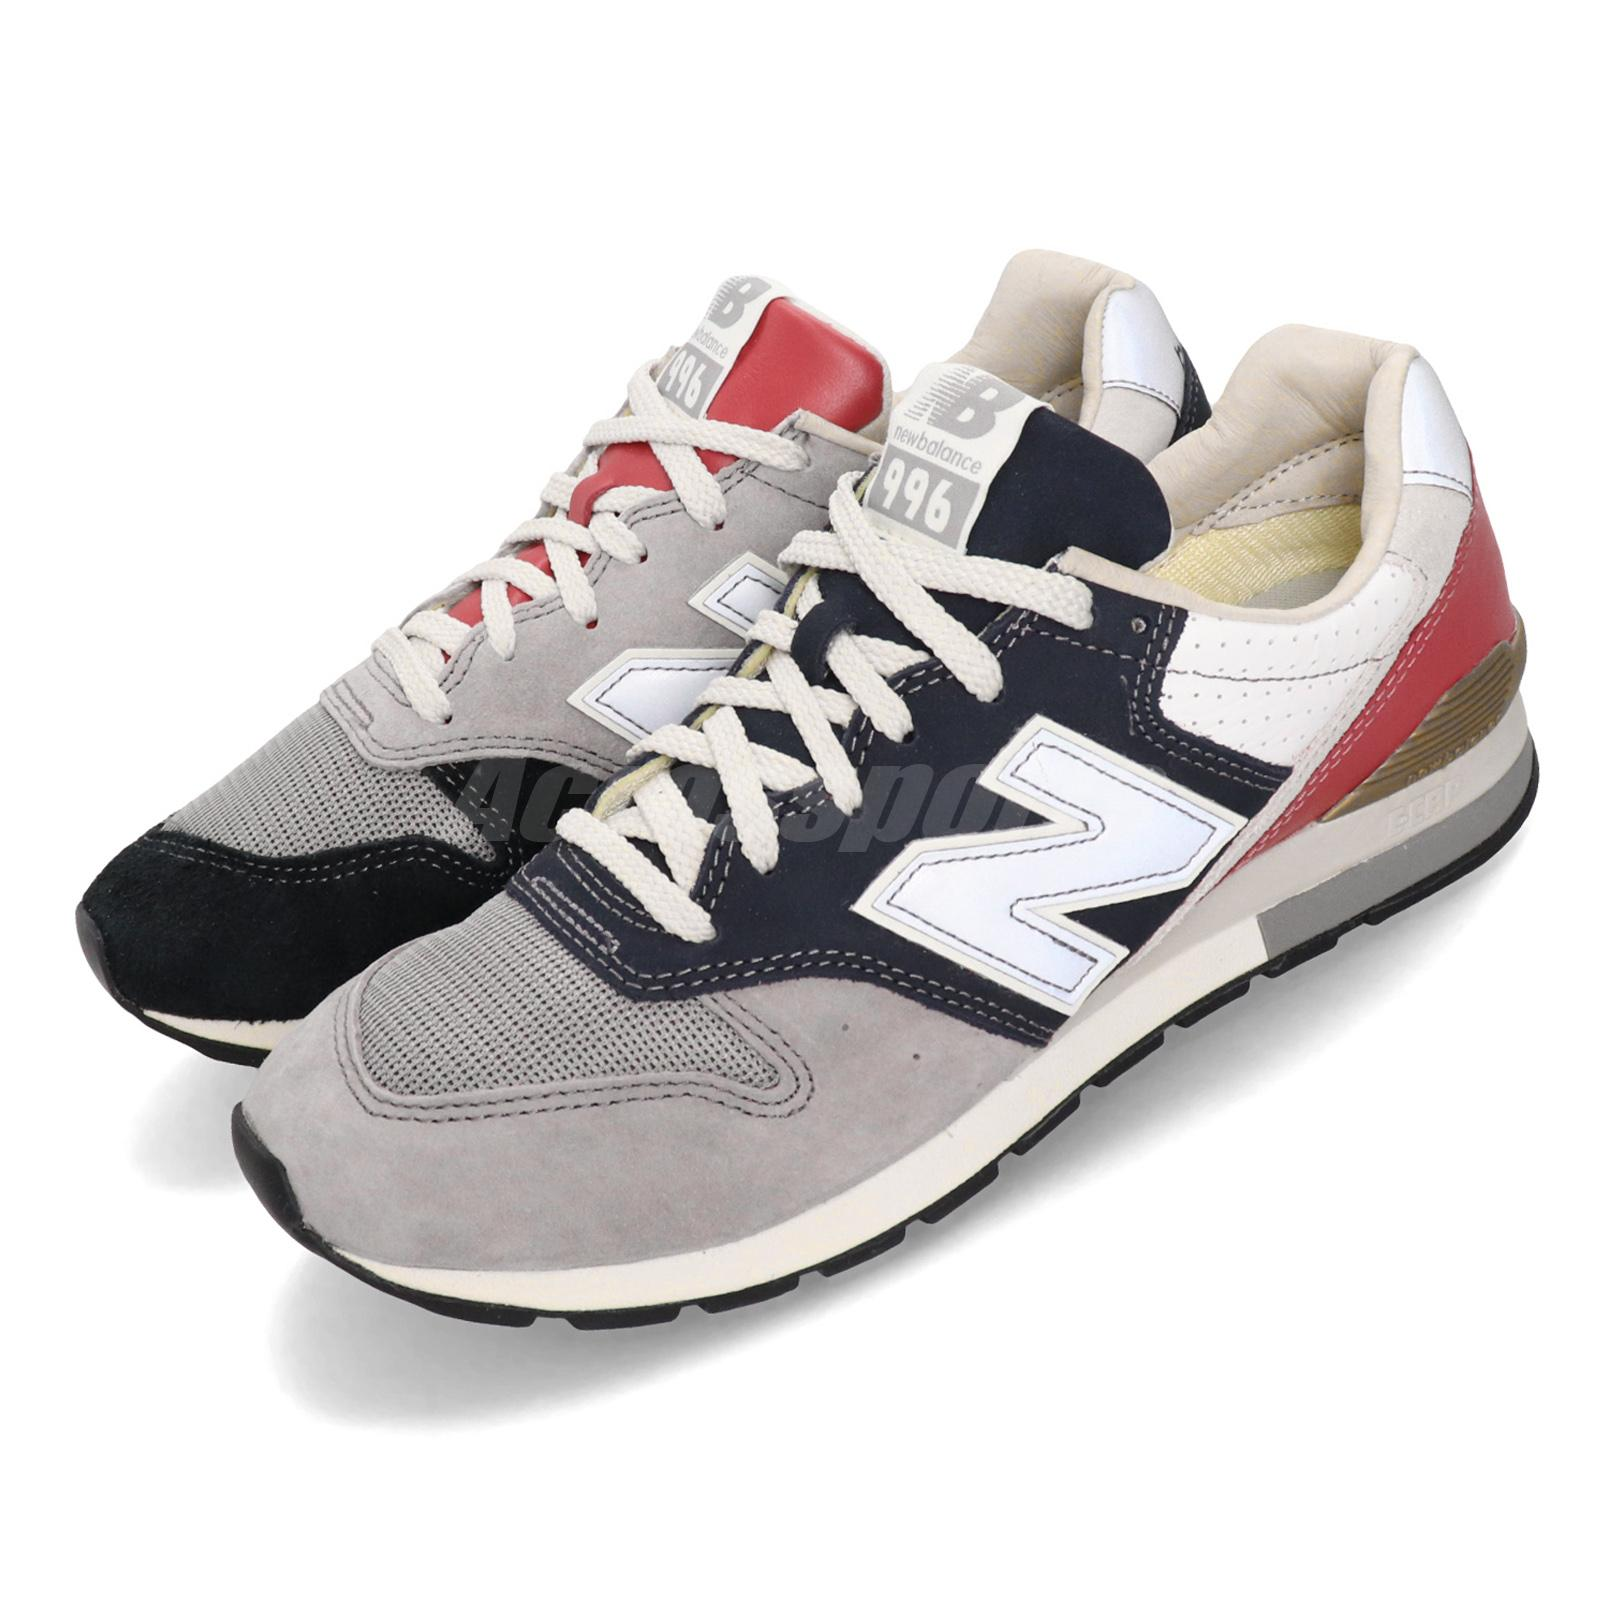 new balance 996 eclipse